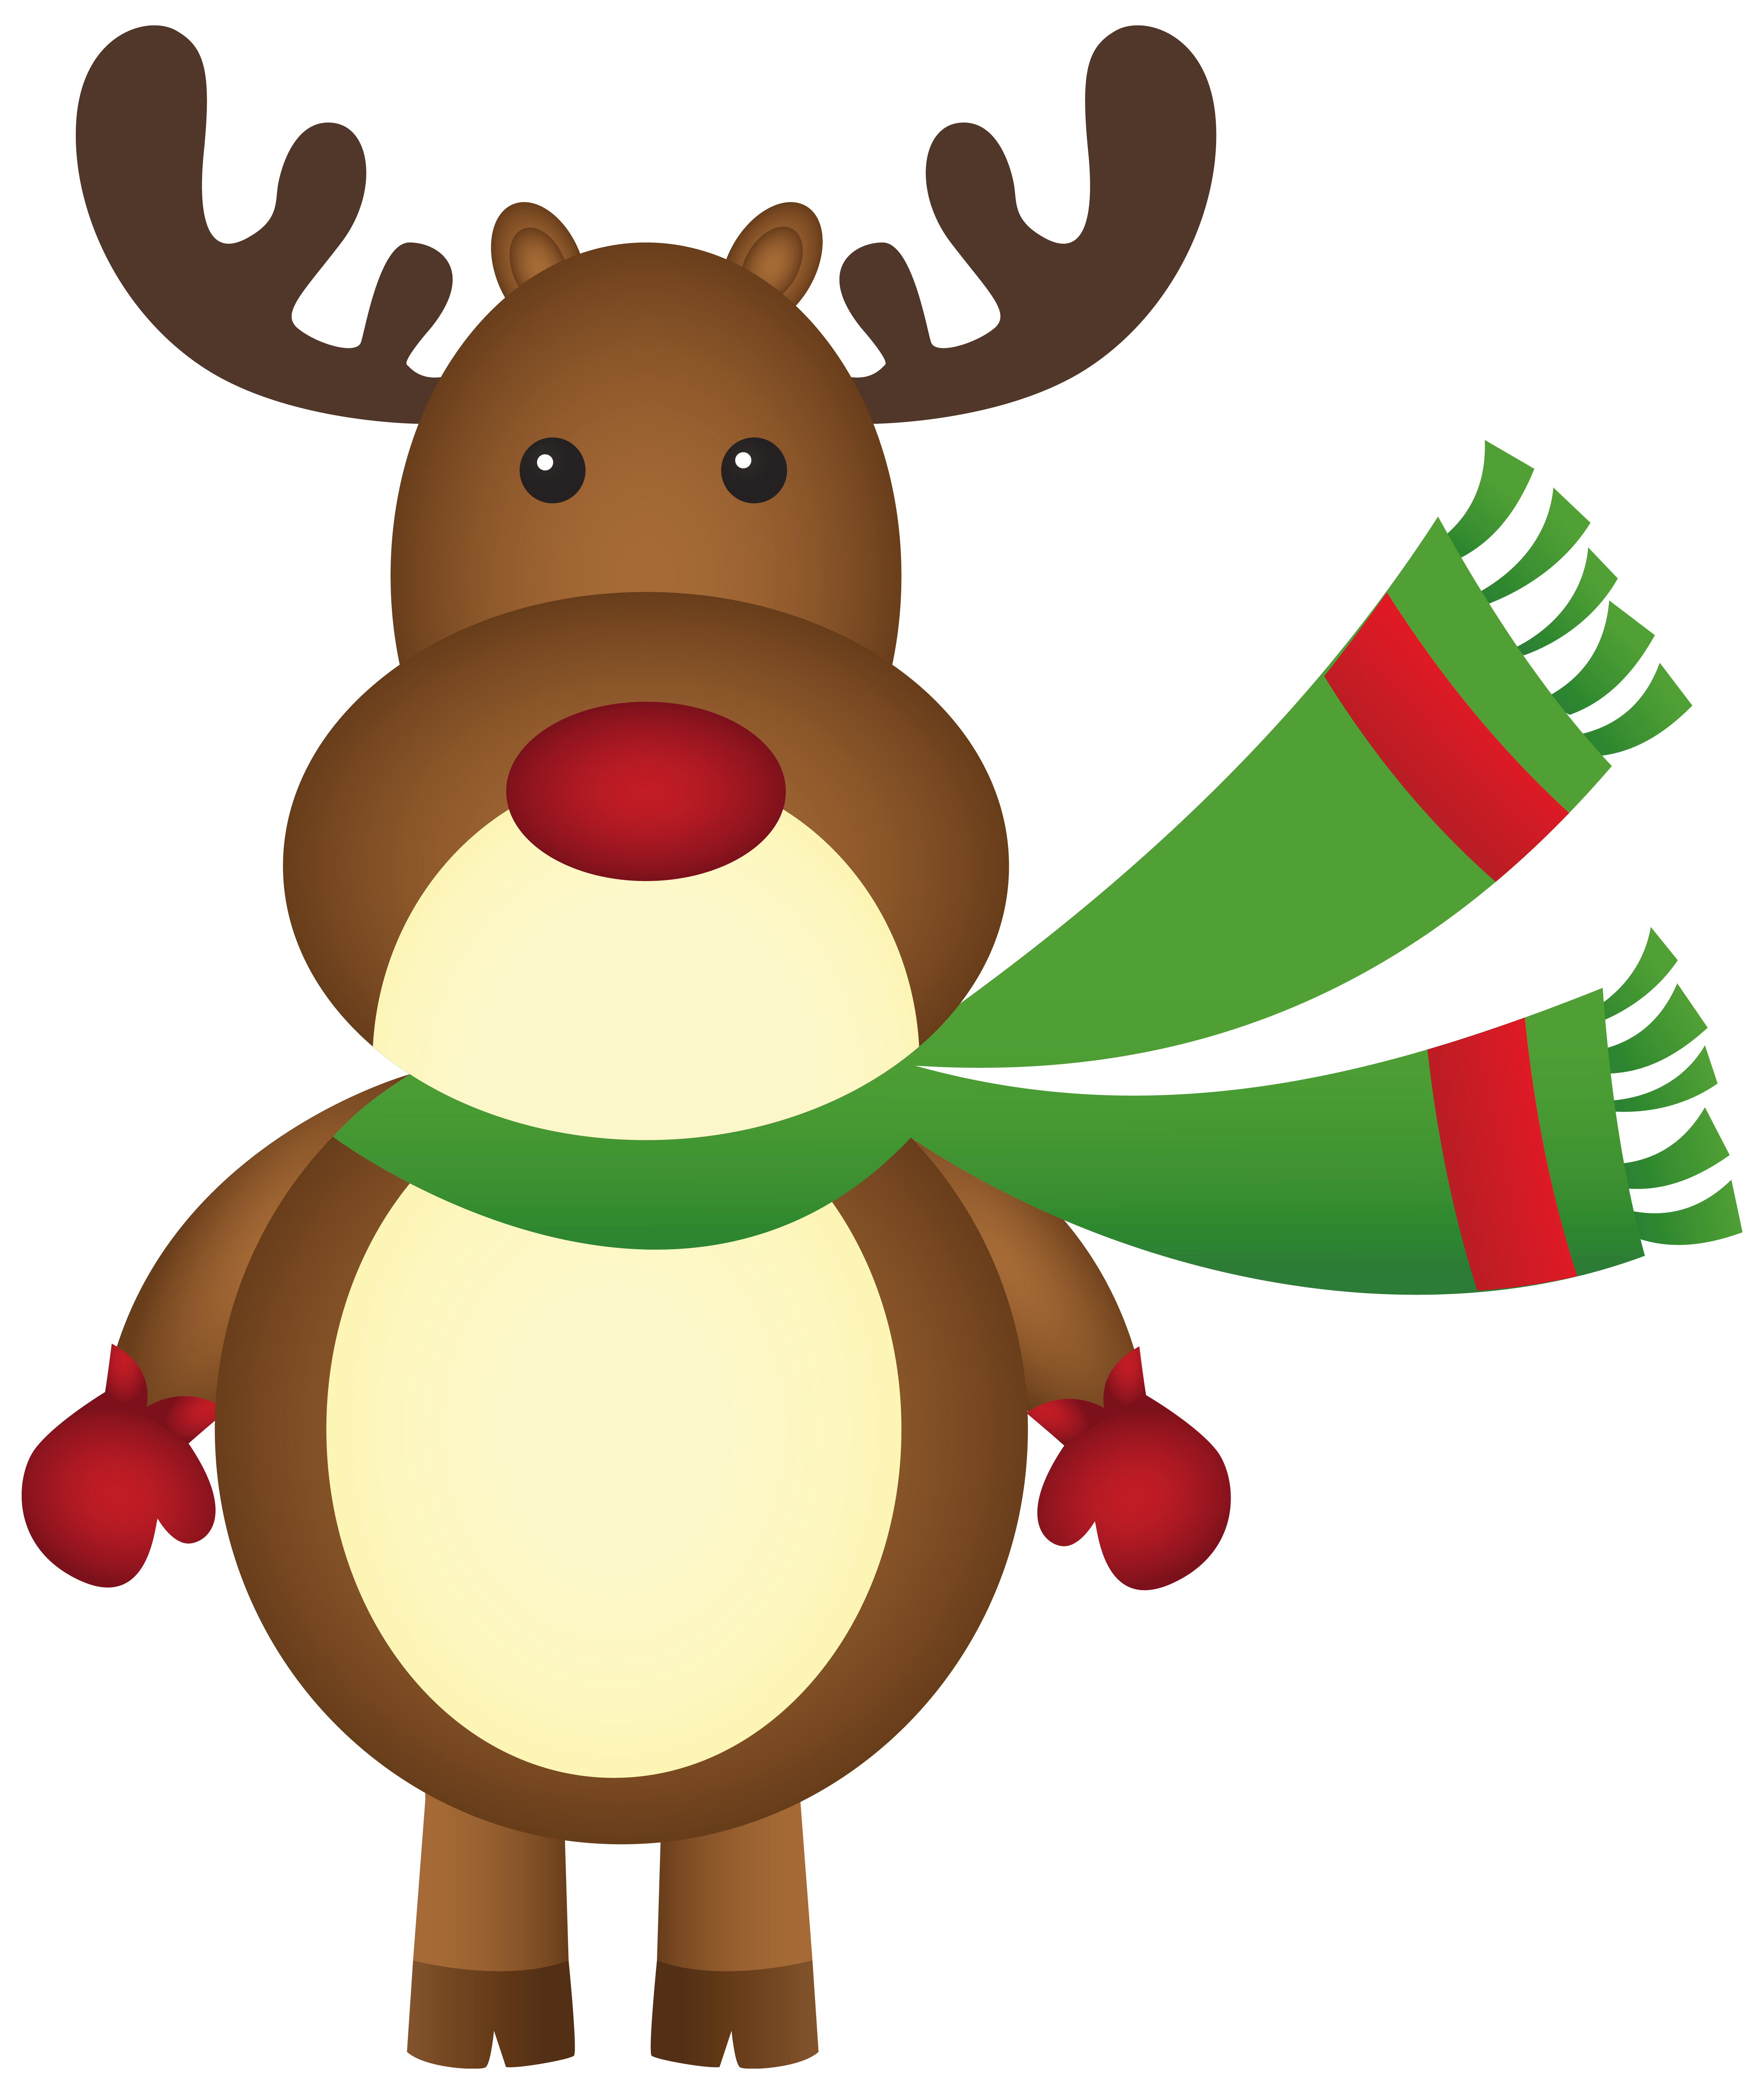 Christmas Rudolph With Scarf PNG Clipart-Christmas Rudolph with Scarf PNG Clipart Image-1